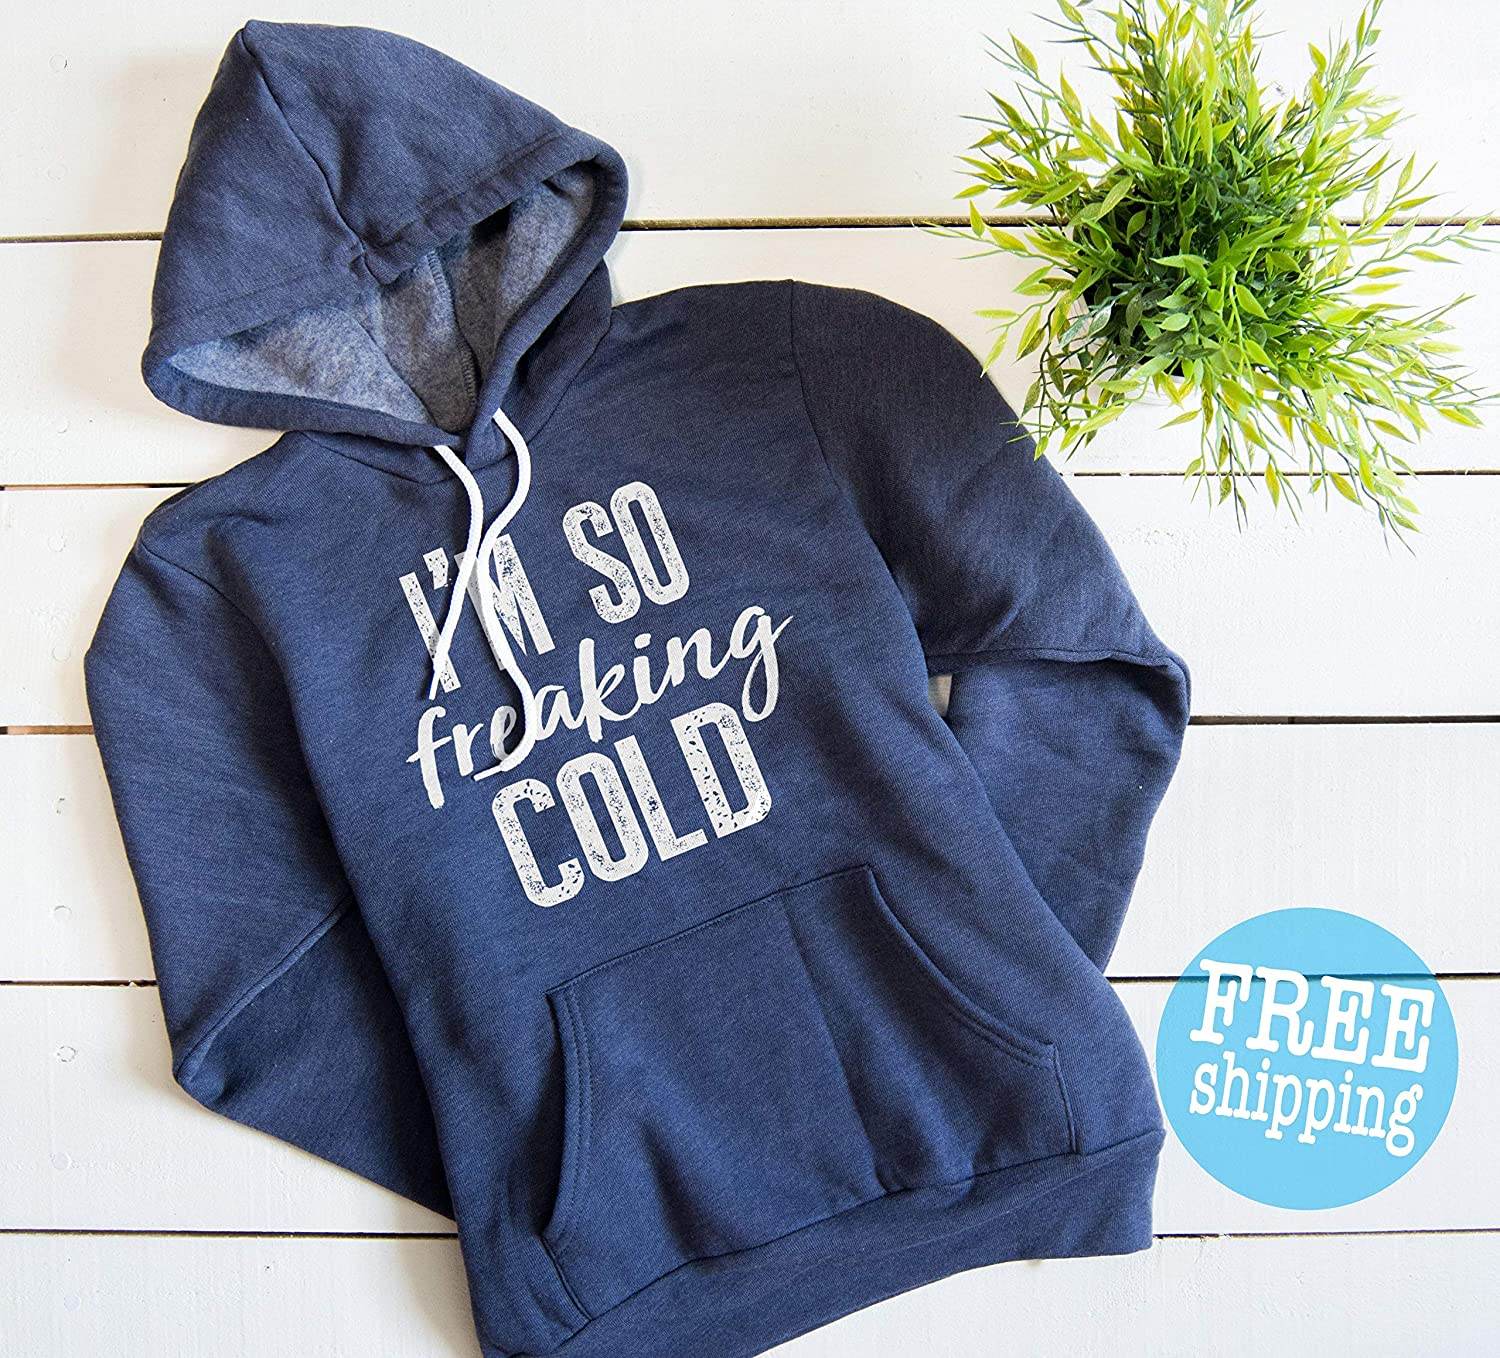 I'm so freaking cold sweatshirt, I am so freaking cold, Freaking cold, I'm so freaking cold hoodie, i'm so freaking cold, Super soft Hoodie i'm so freaking cold